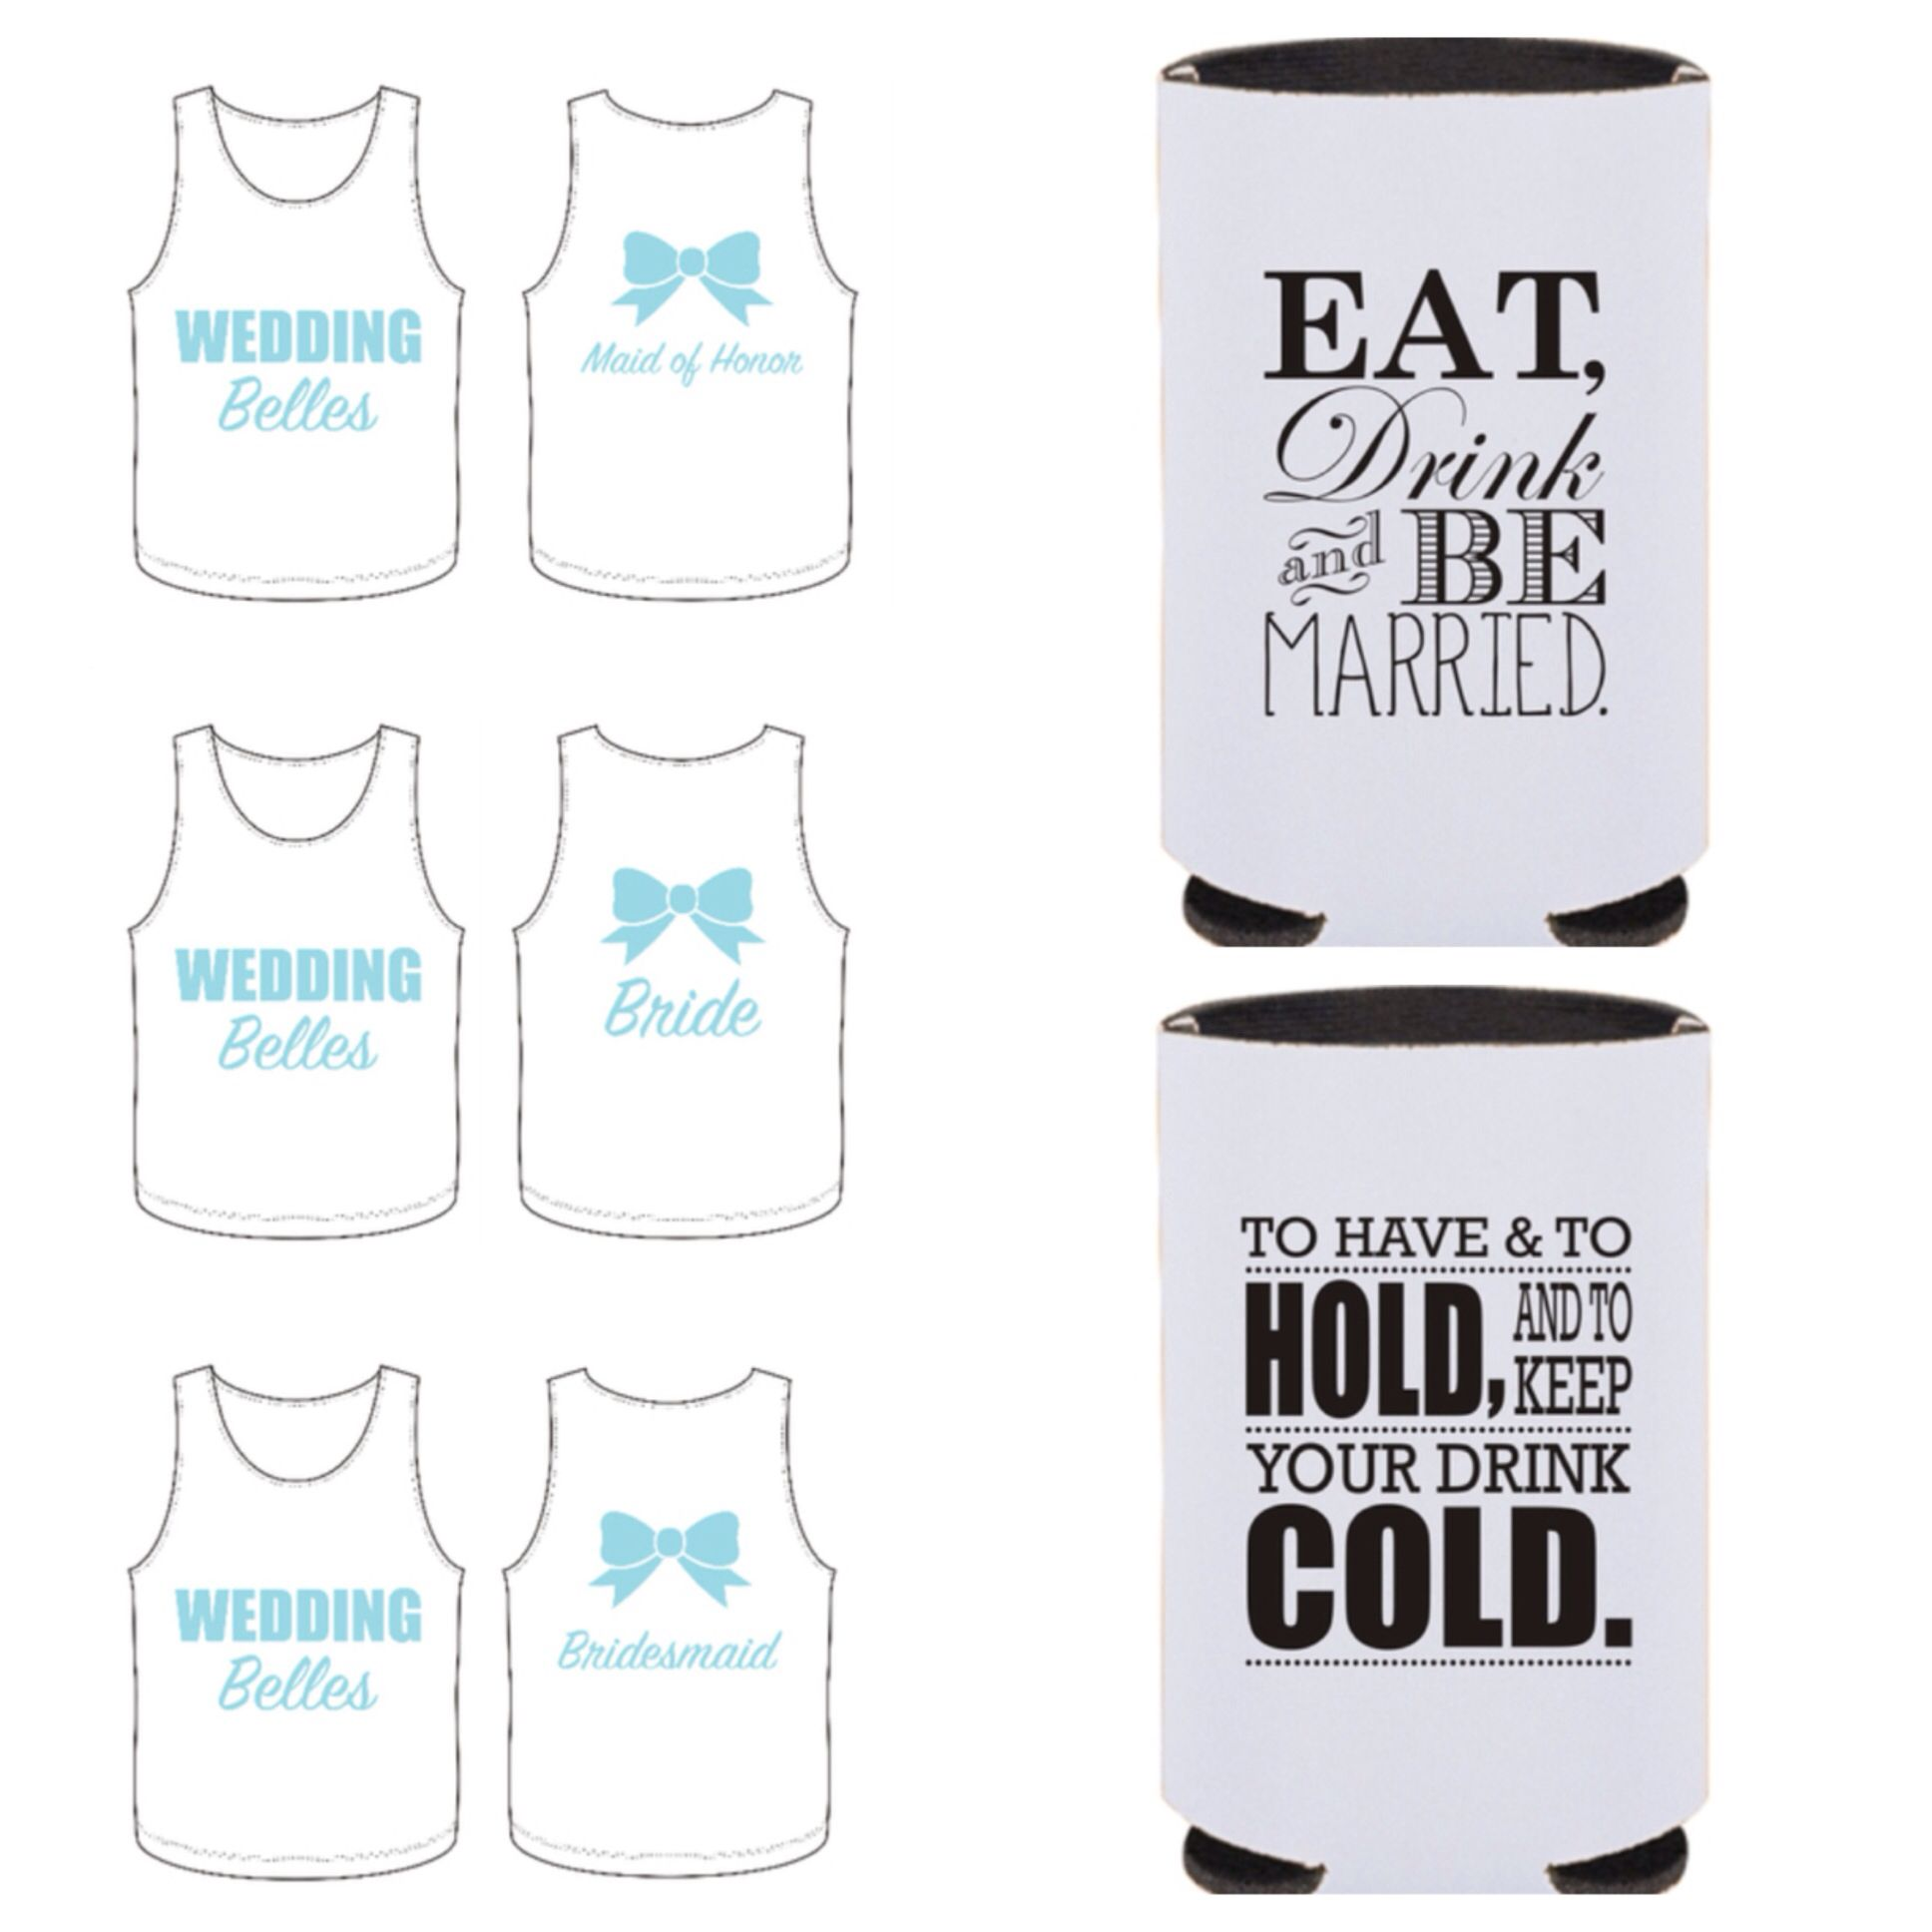 New WEDDING BELLES line from Kiss My Southern Sass!!! Use